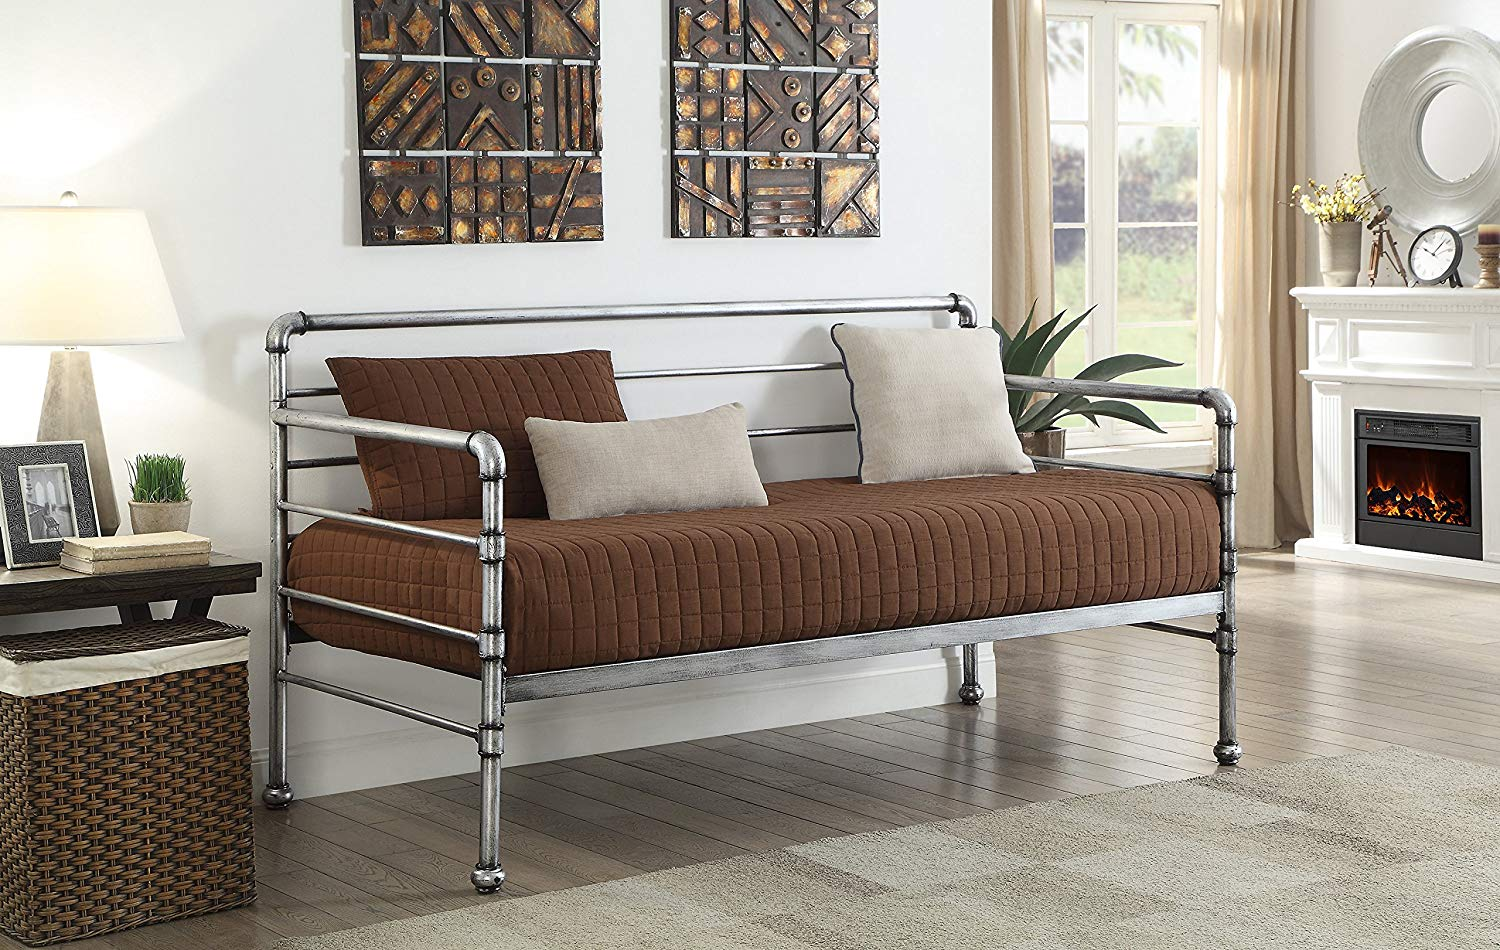 Kings brand furniture vinton metal twin size daybed frame brushed silver finish